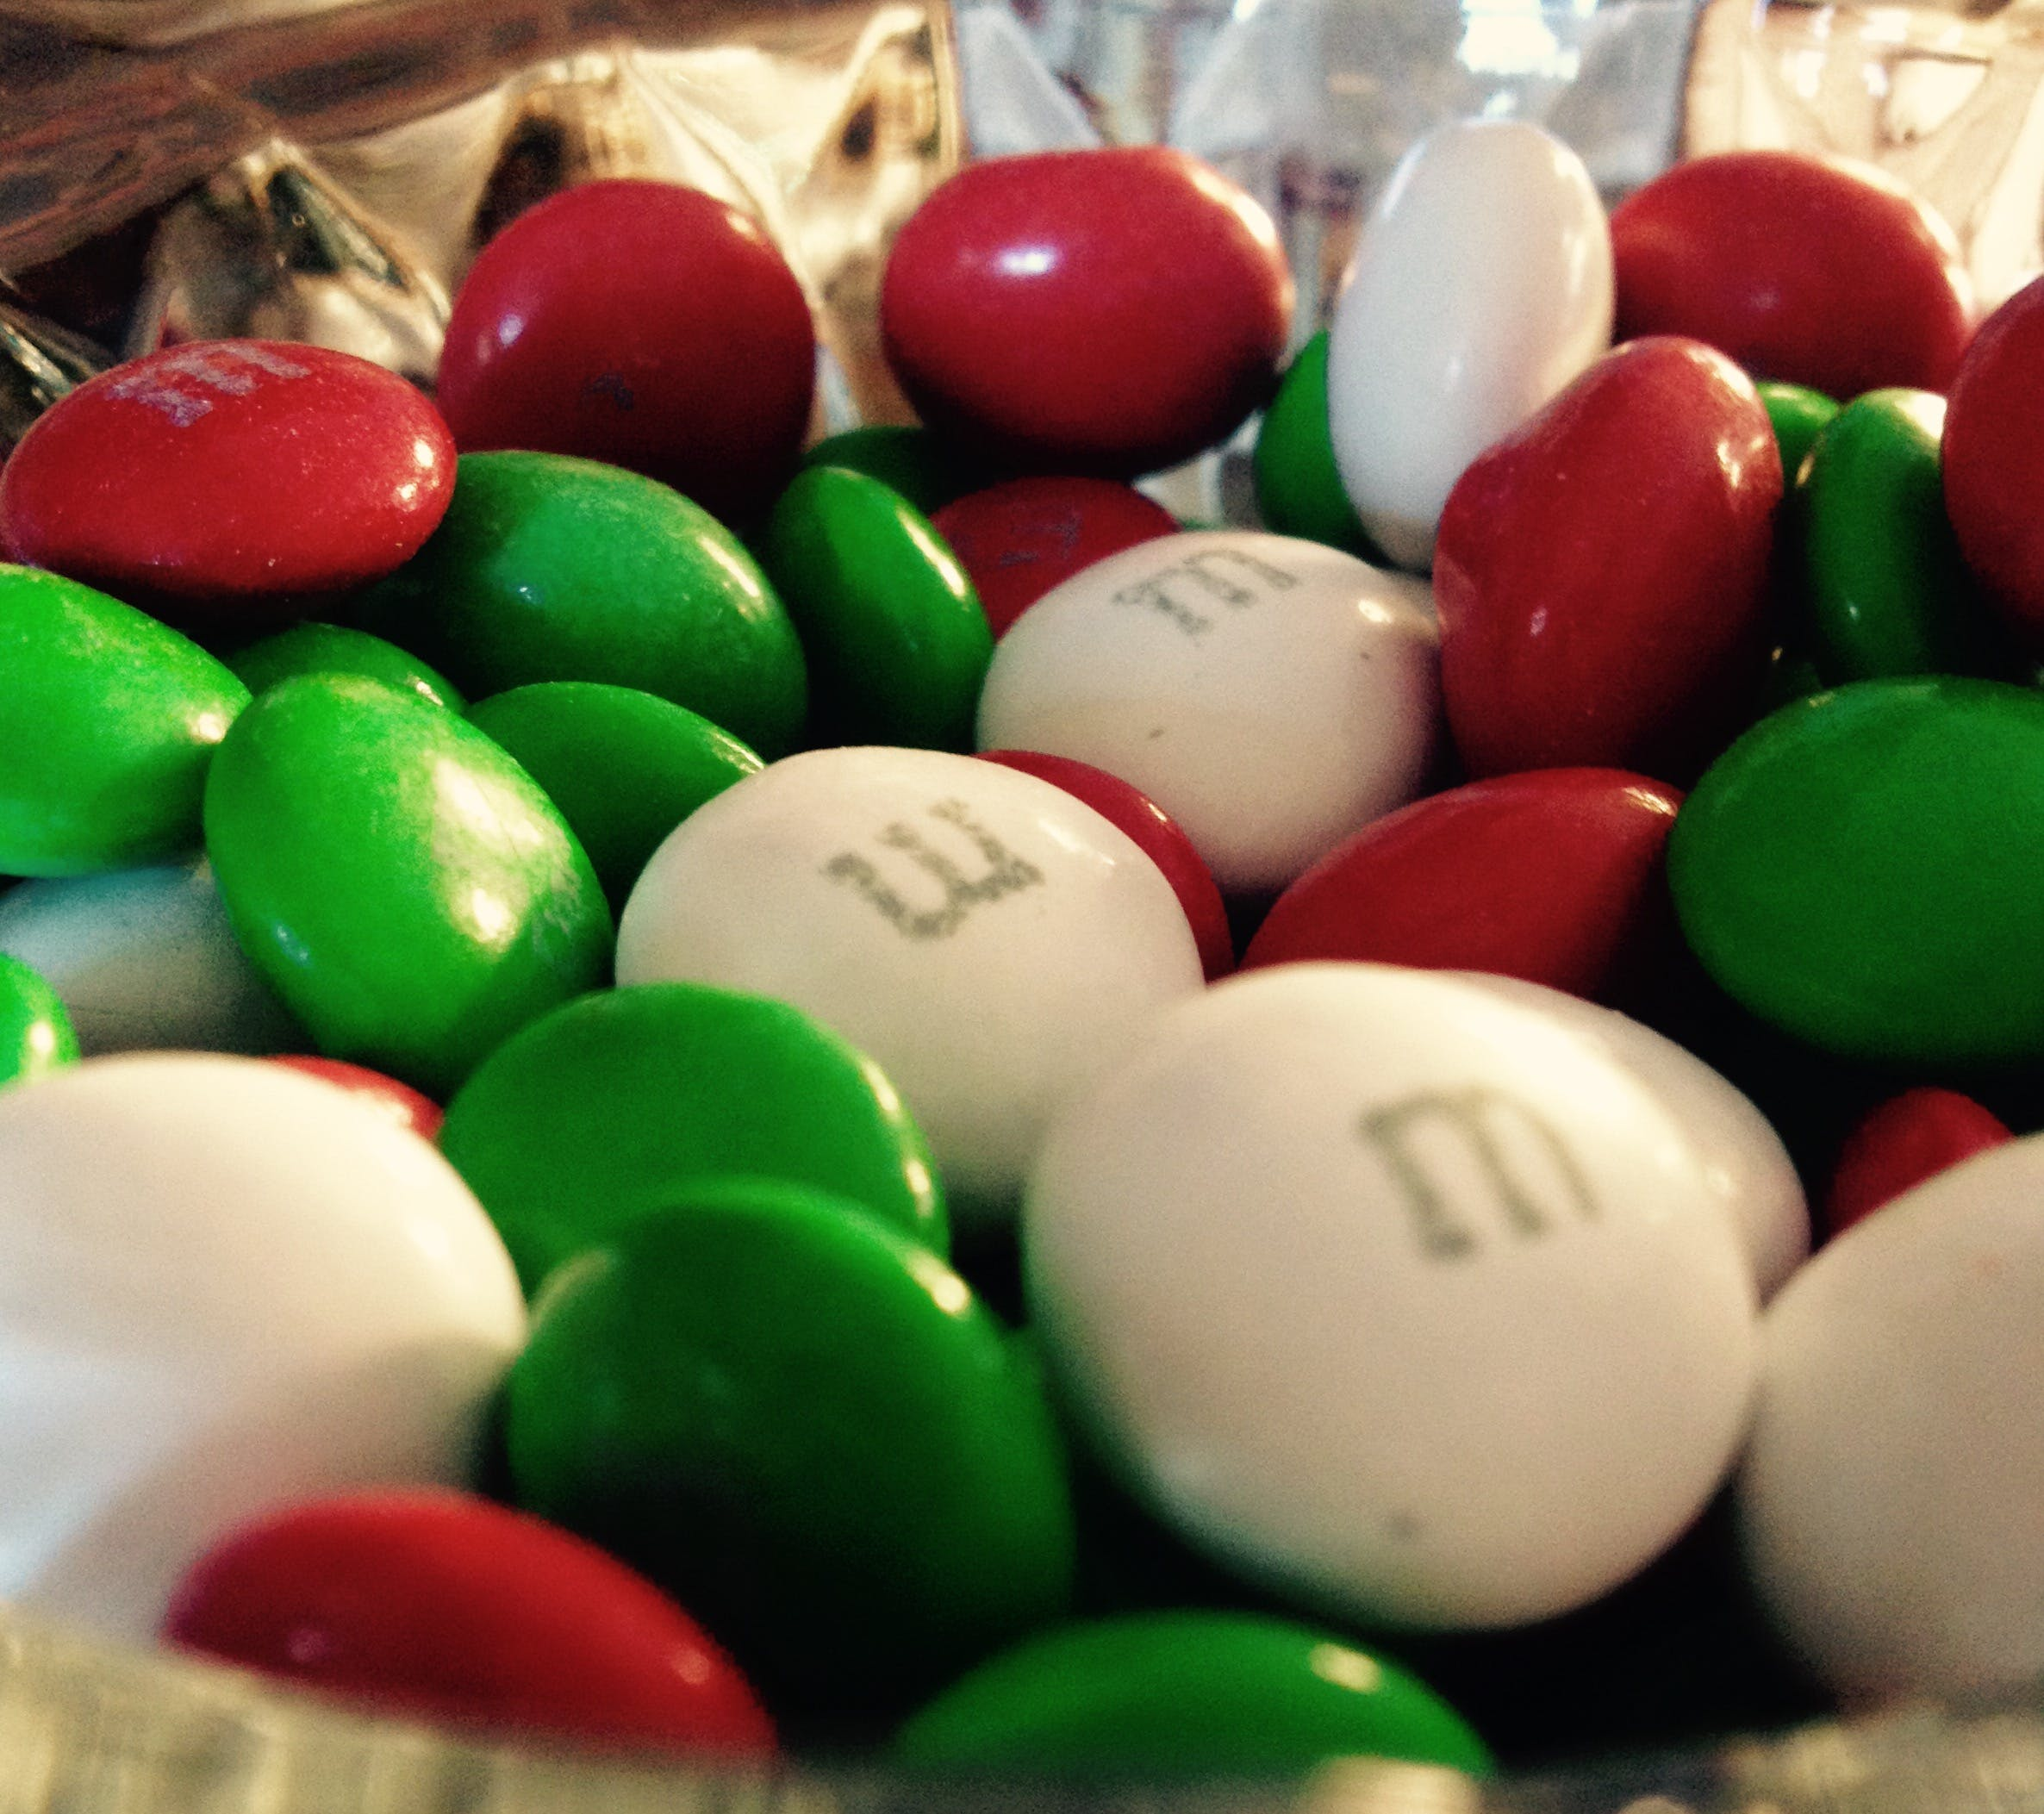 Free stock photo of chocolate, M&Ms, sweets